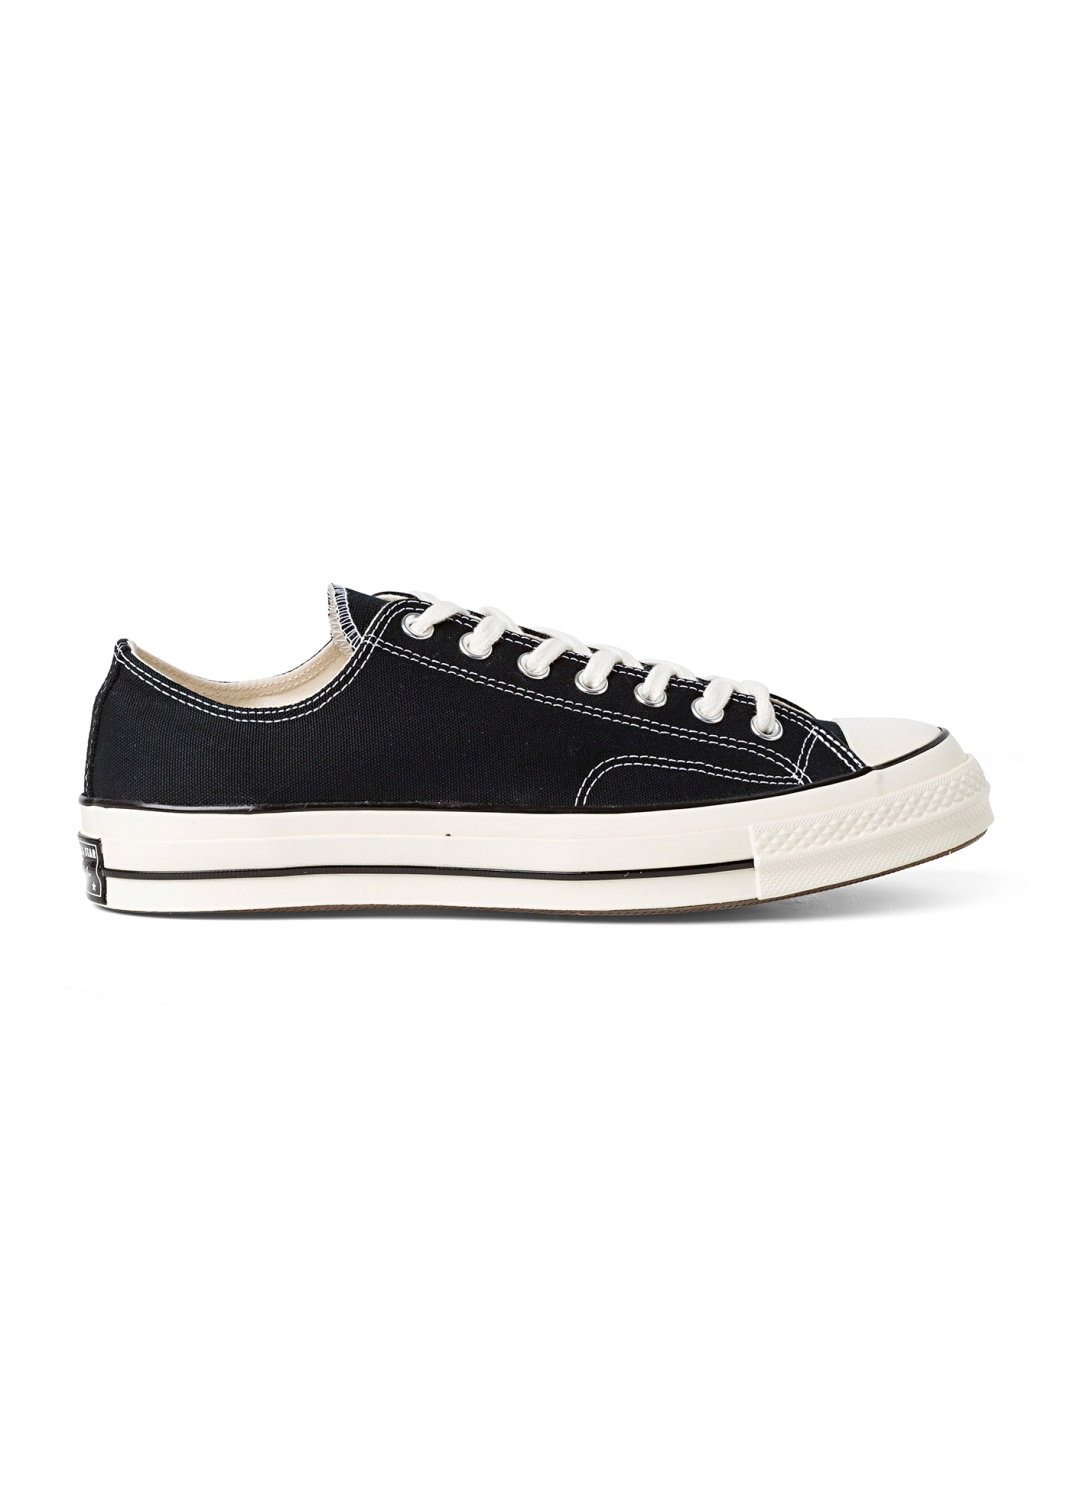 CHUCK 70 OX  He-Schuhe image number 0